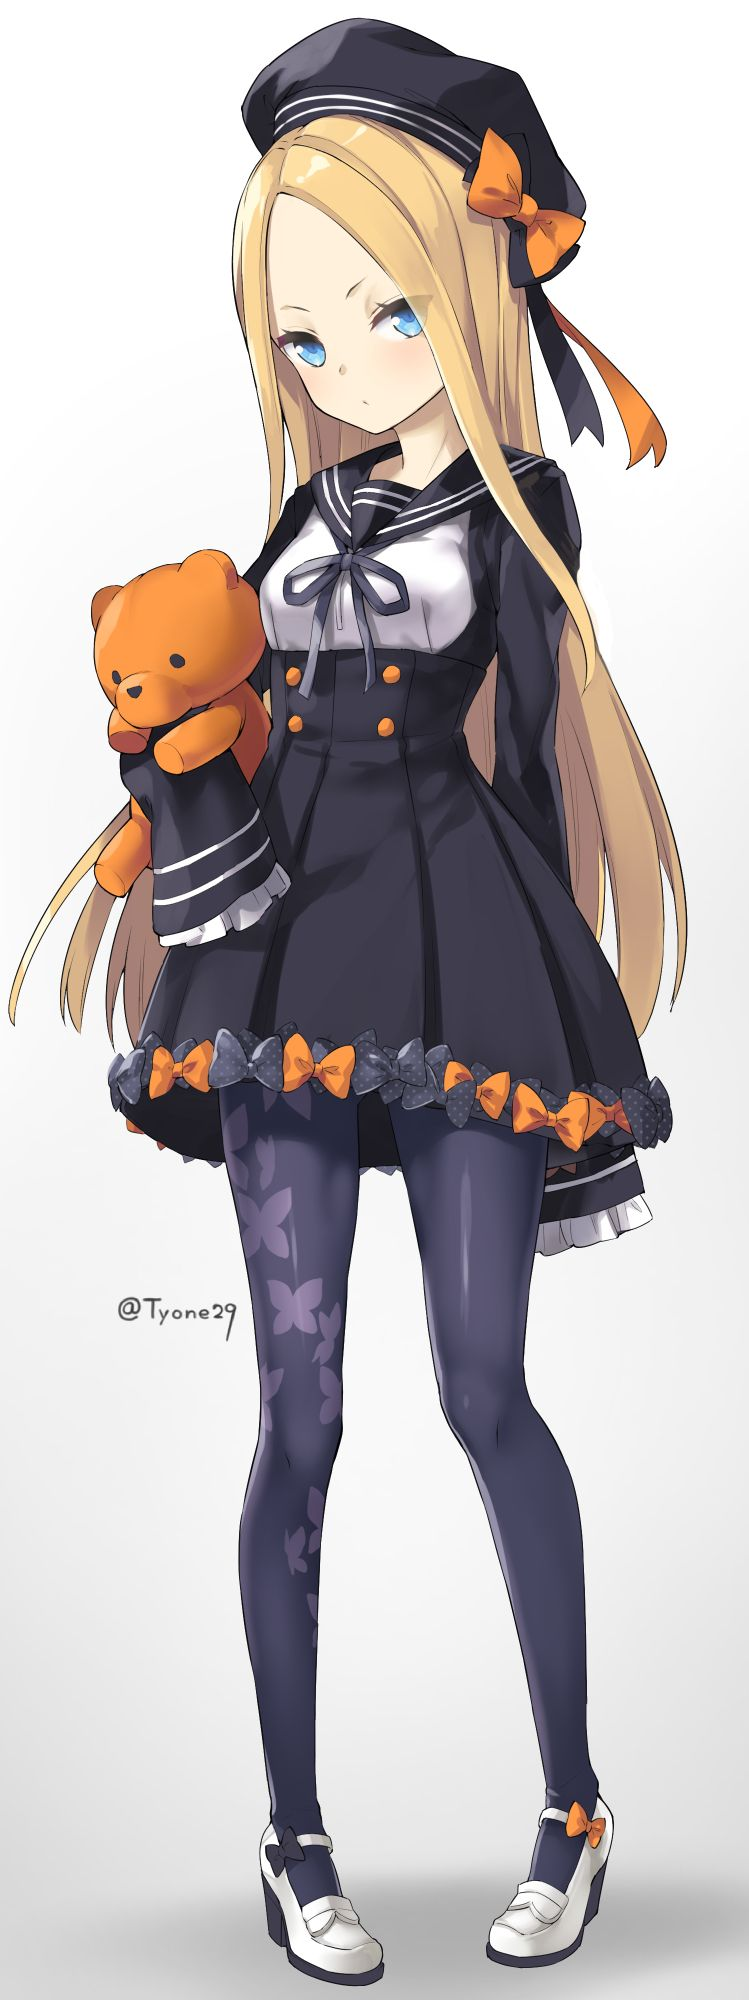 abigail williams character